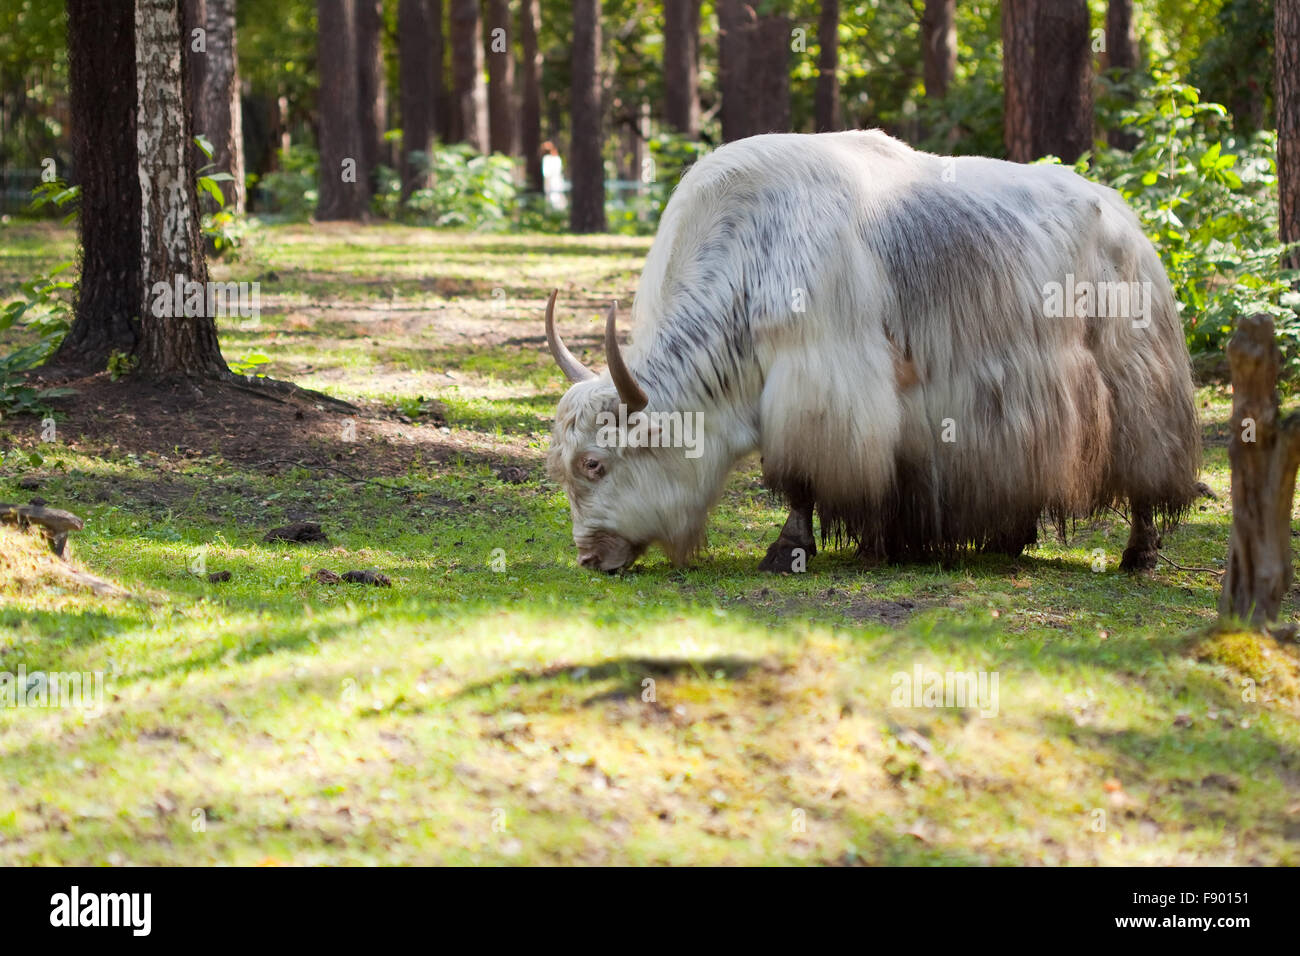 grunting ox against nature background - Stock Image